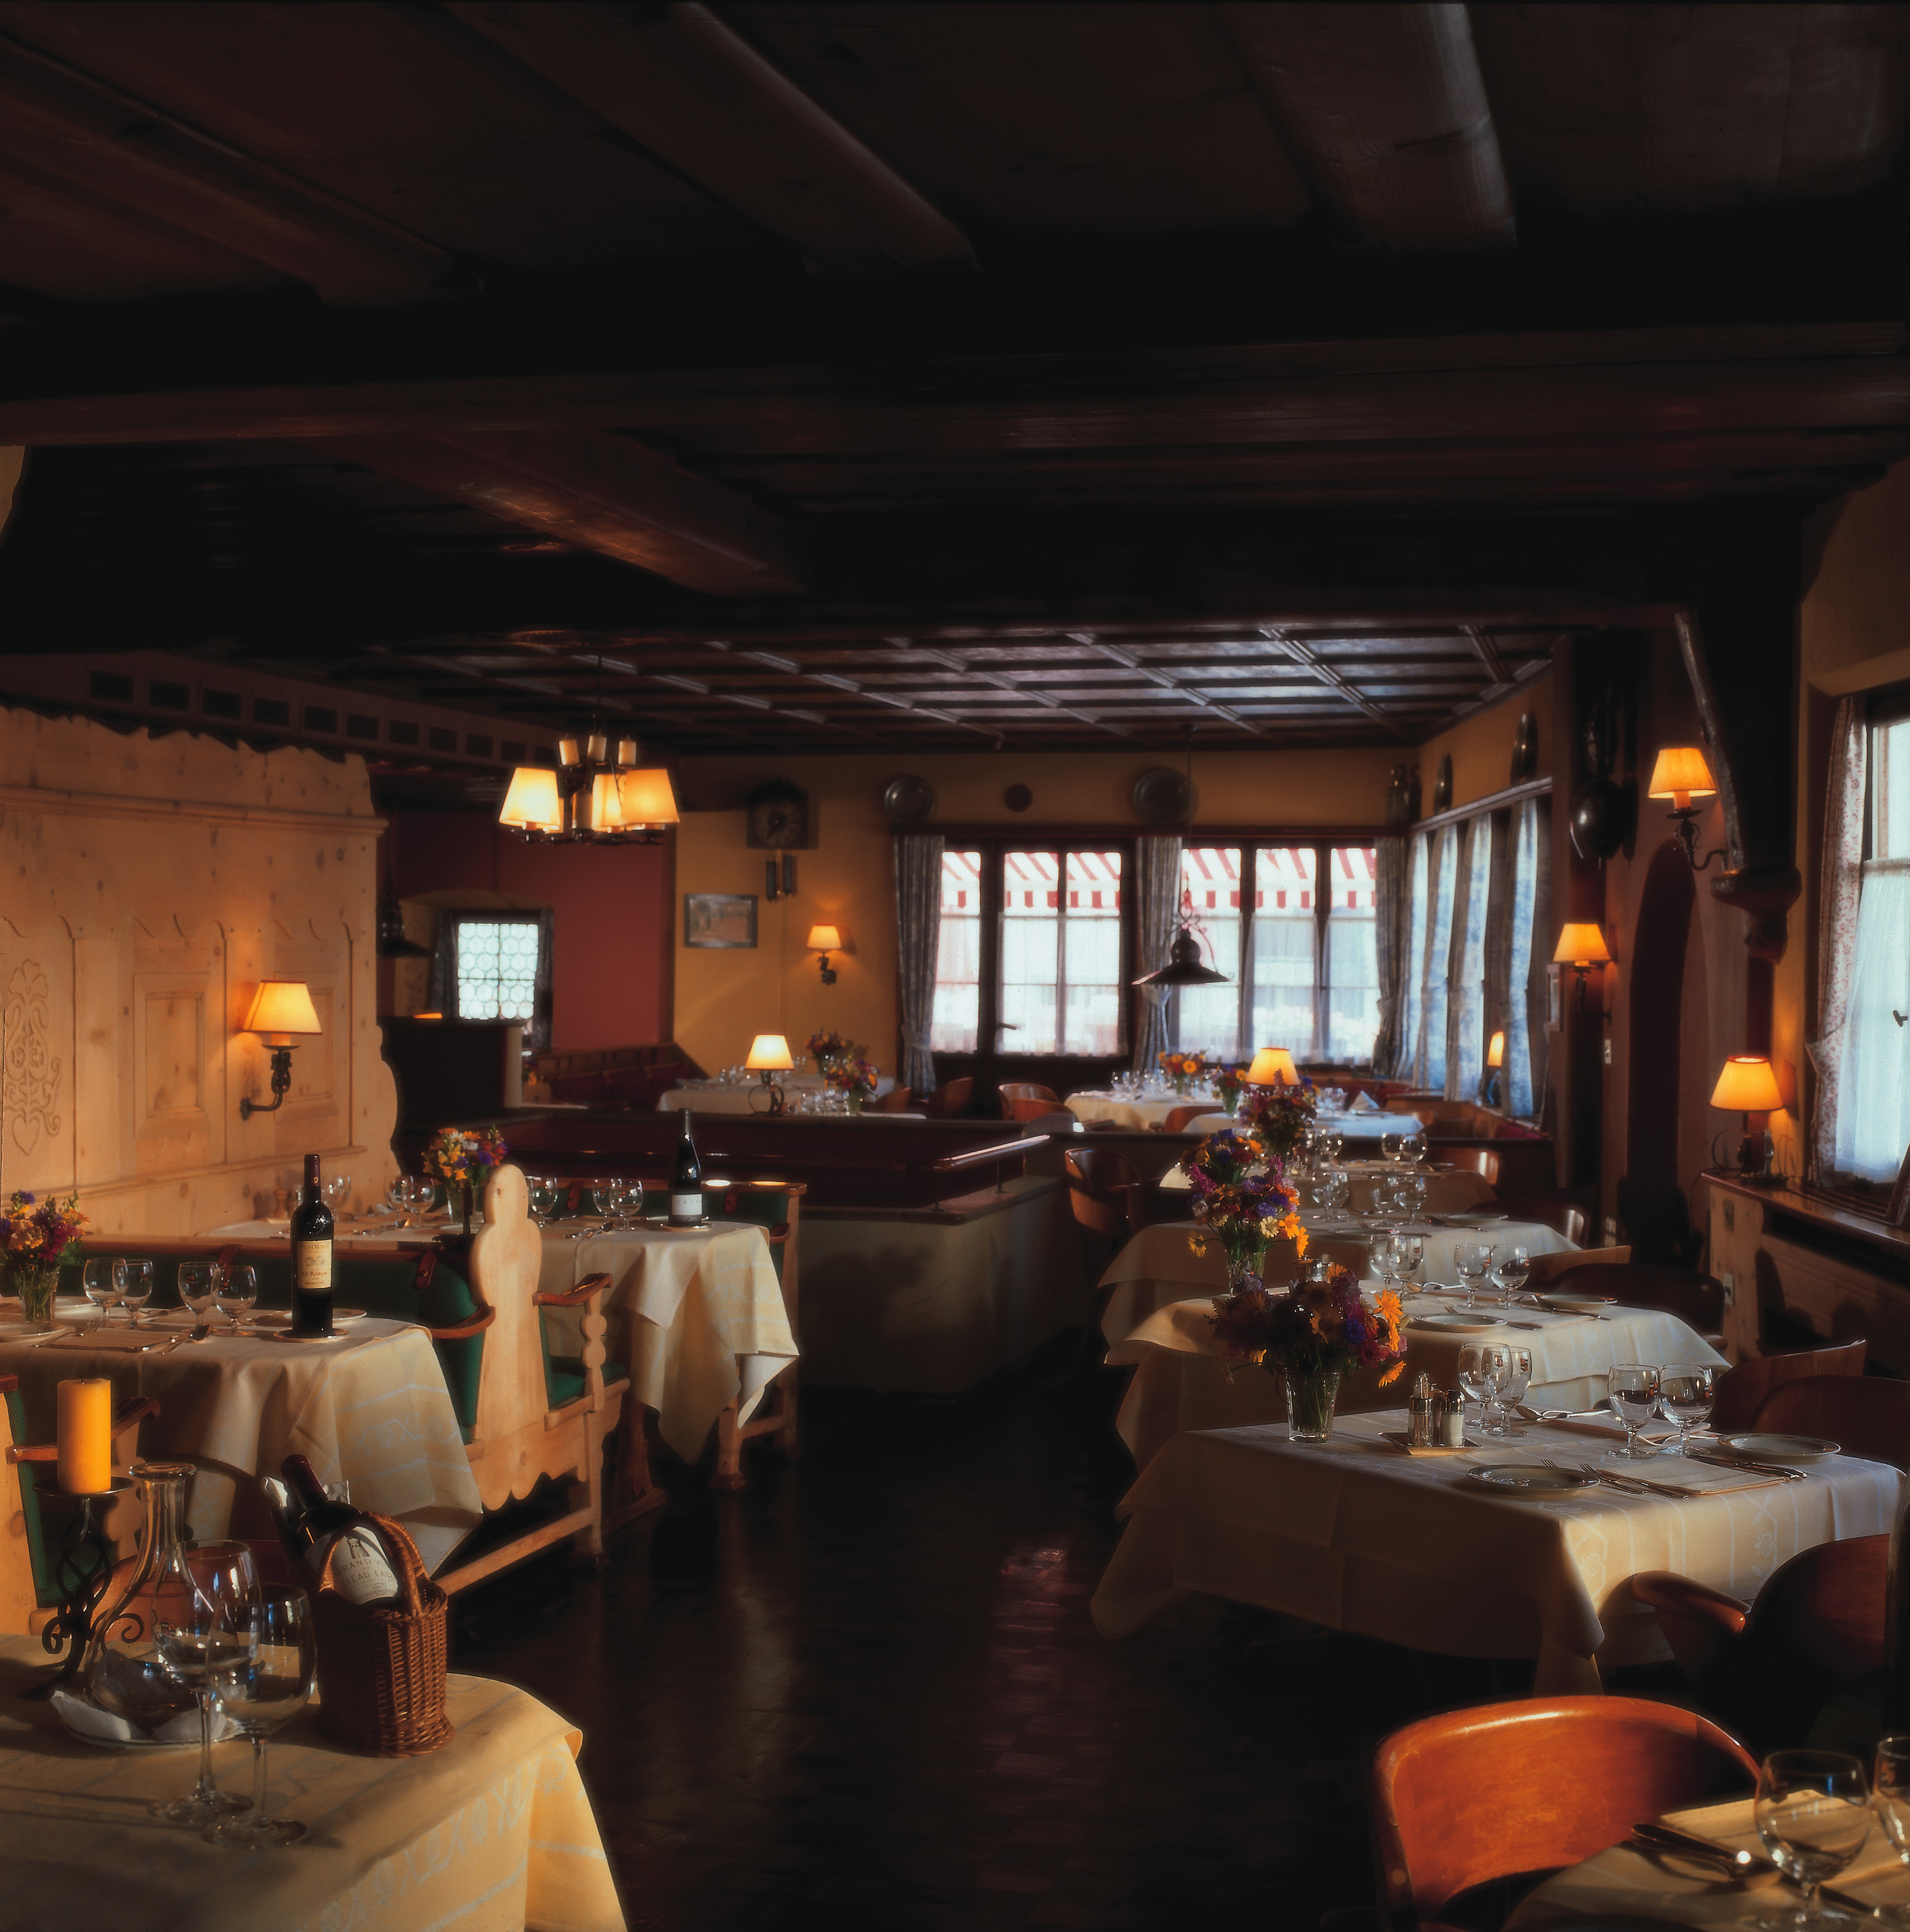 10. Dine at a famous restaurant